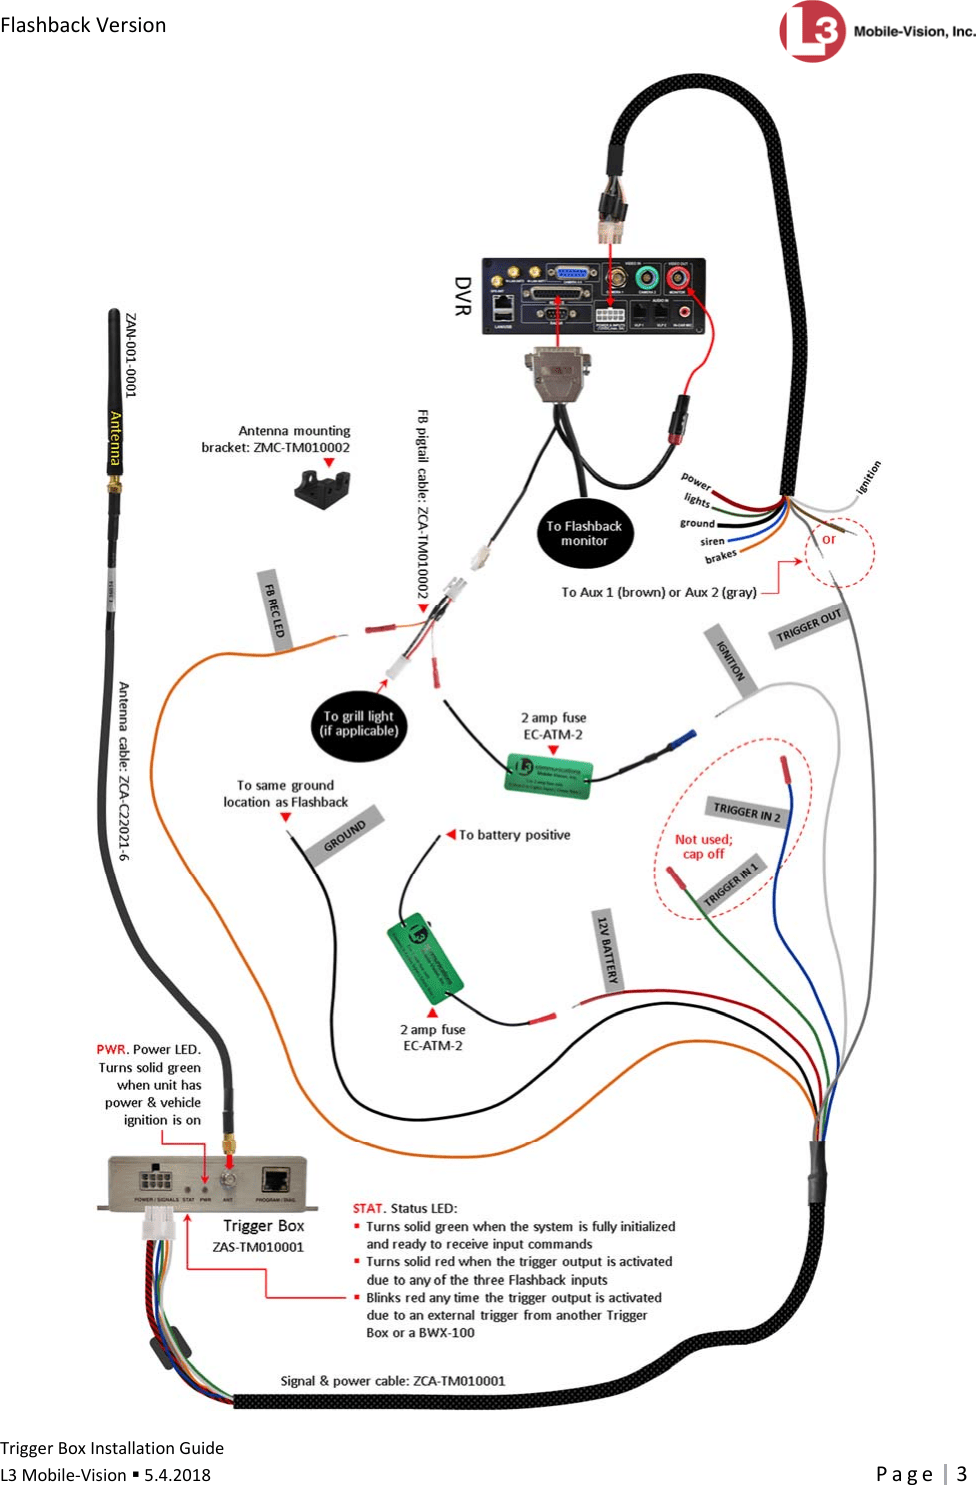 hight resolution of mobile vision wiring diagram blog wiring diagram flashback mobile vision wiring diagram 2